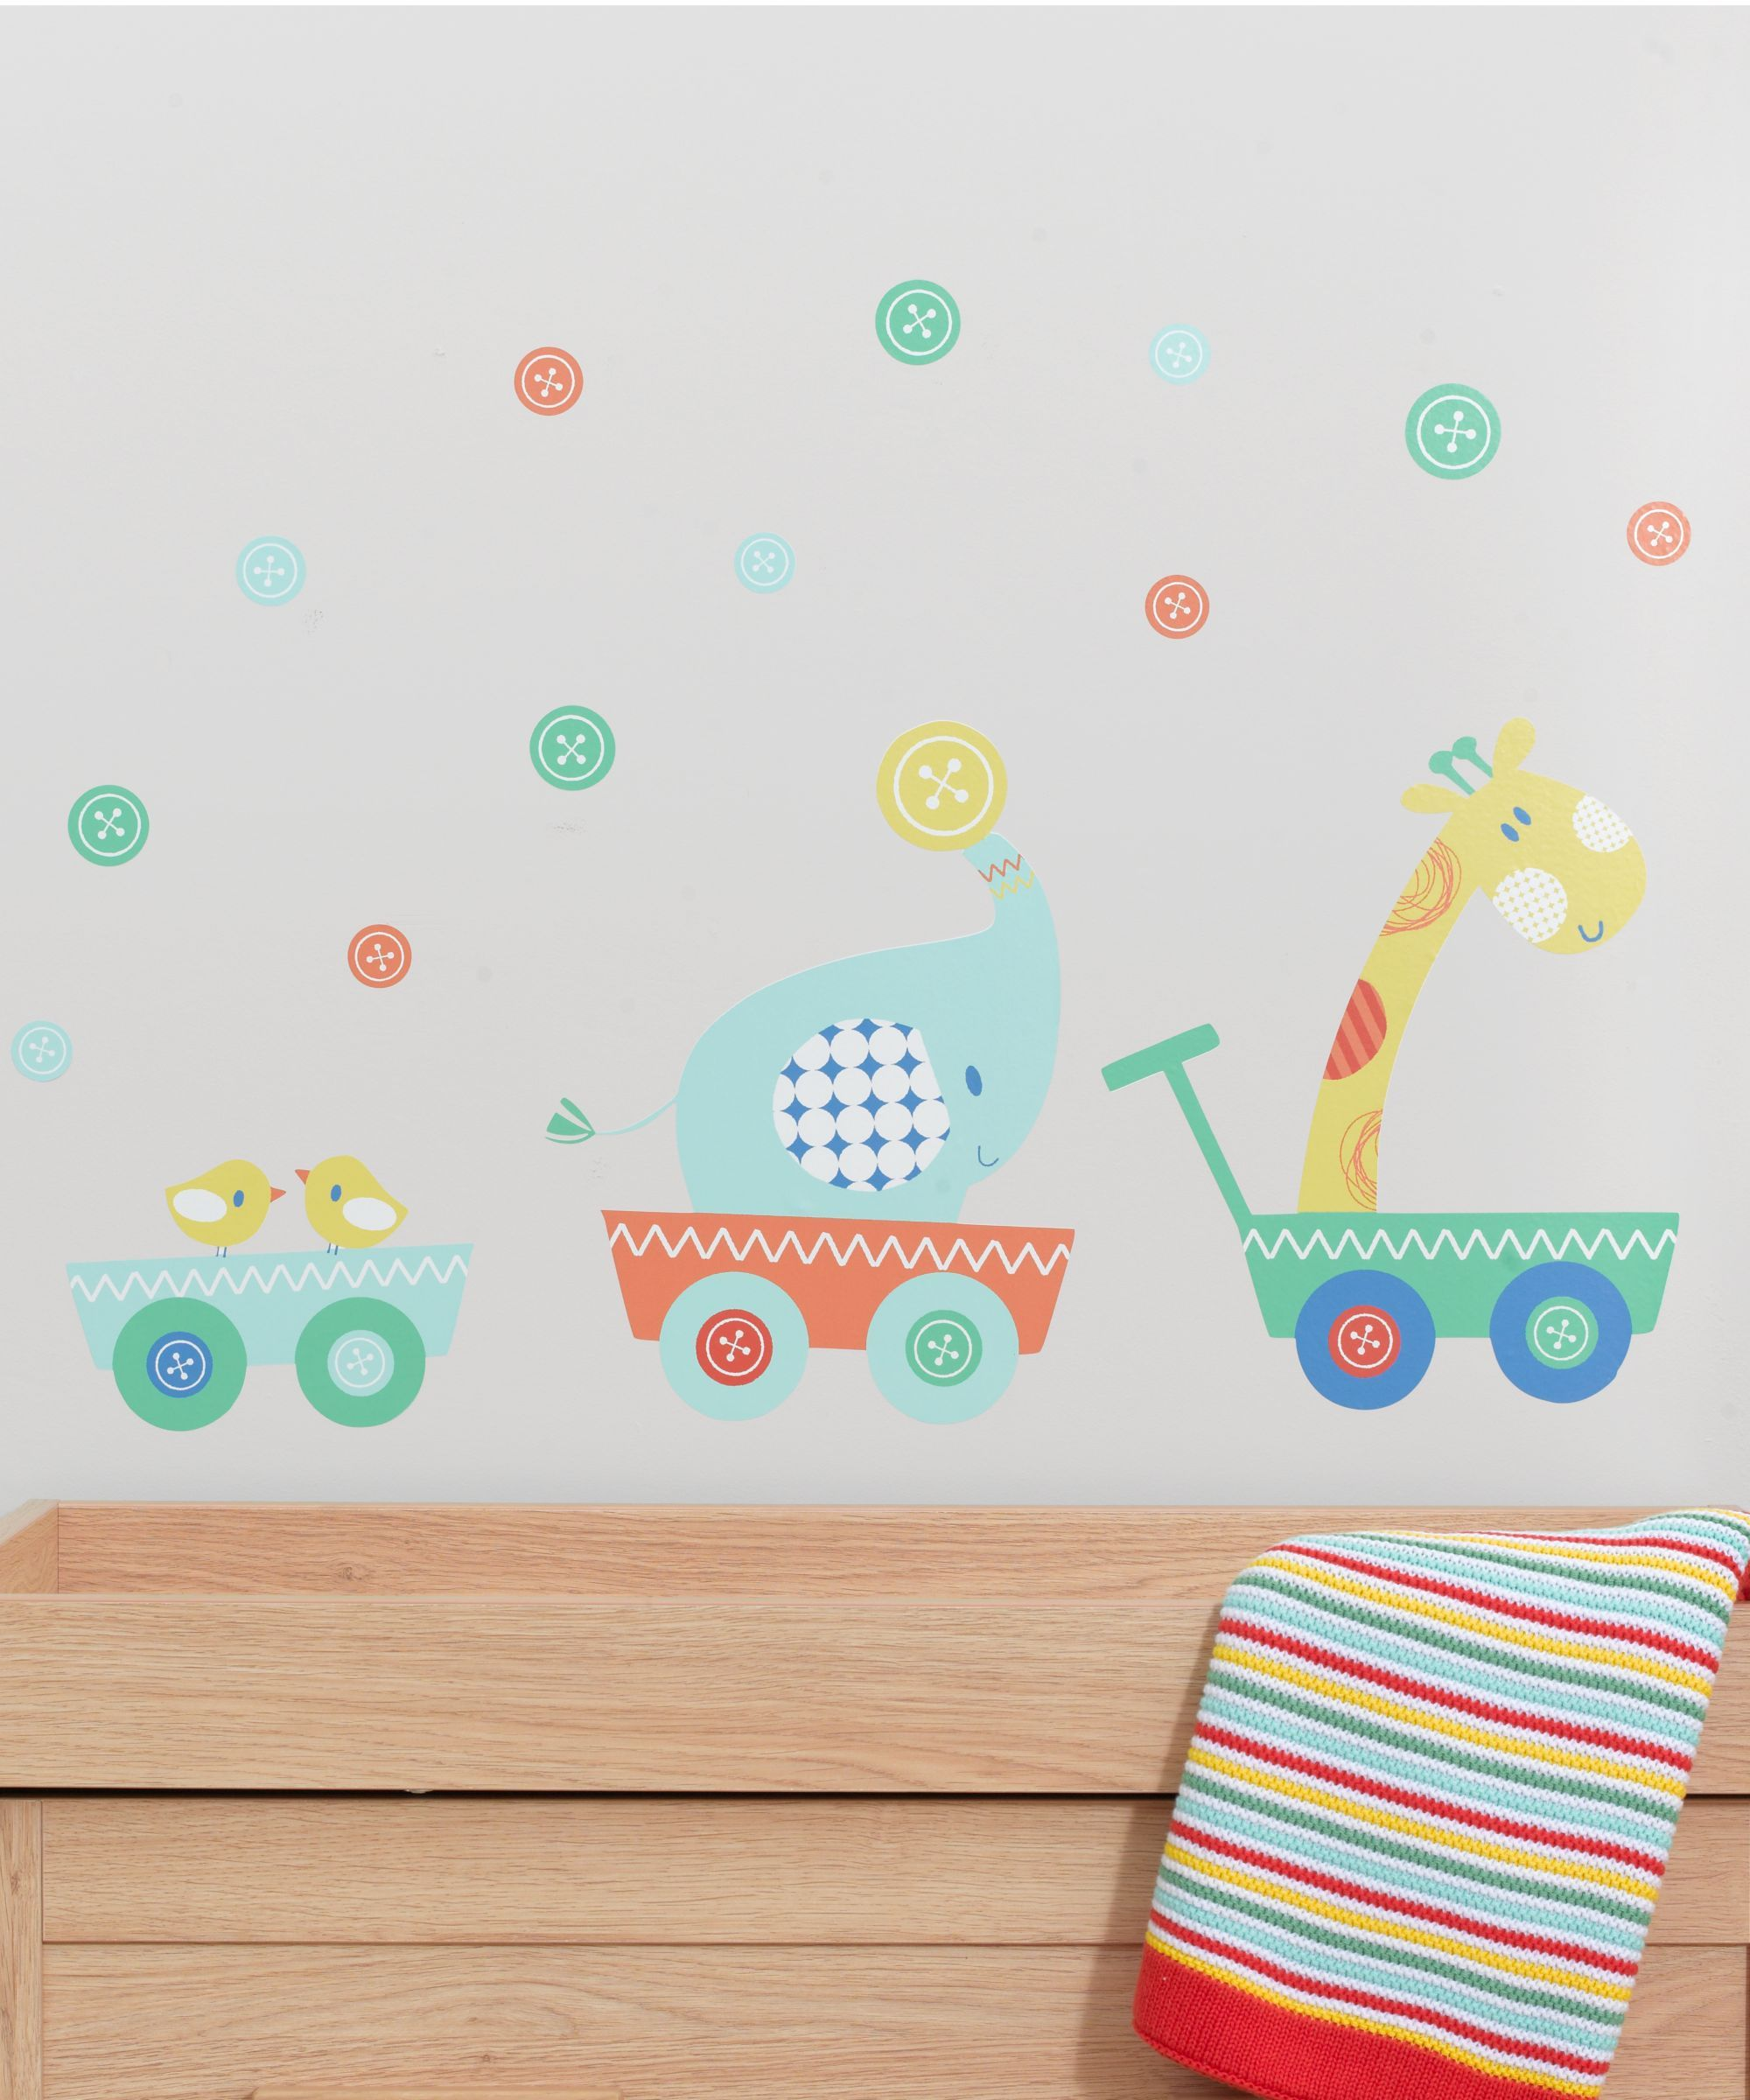 Mothercare roll up roll up circus wall stickers yy bdae mothercare roll up roll up circus wall stickers amipublicfo Gallery